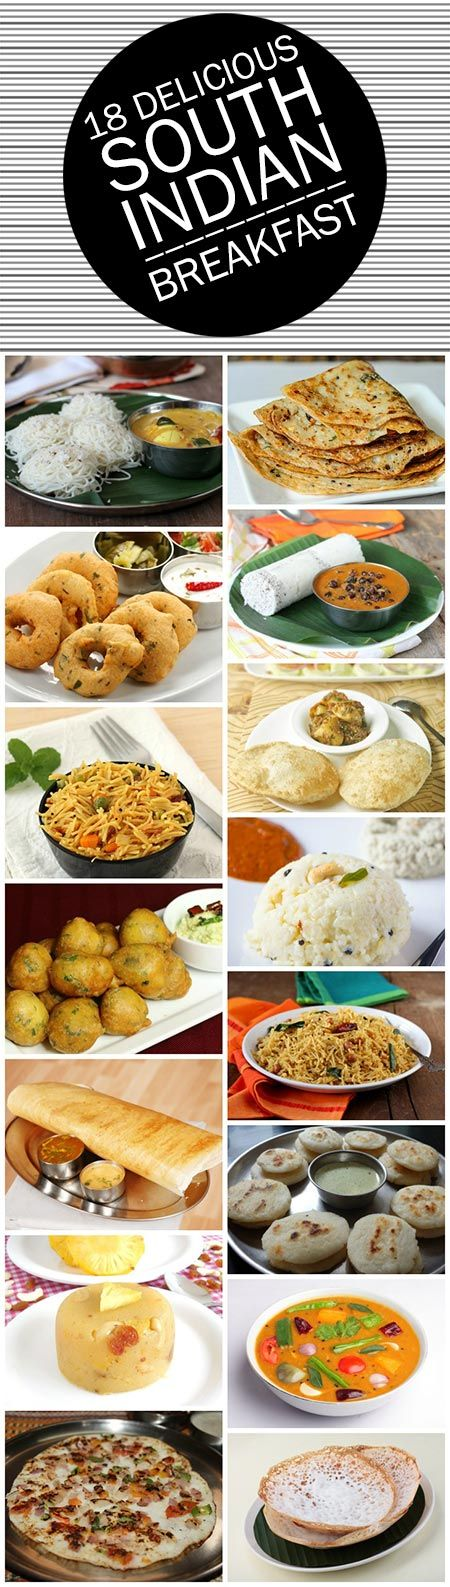 1156 best indian veg food images on pinterest cooking recipes 18 delicious south indian breakfast recipes you must try forumfinder Images